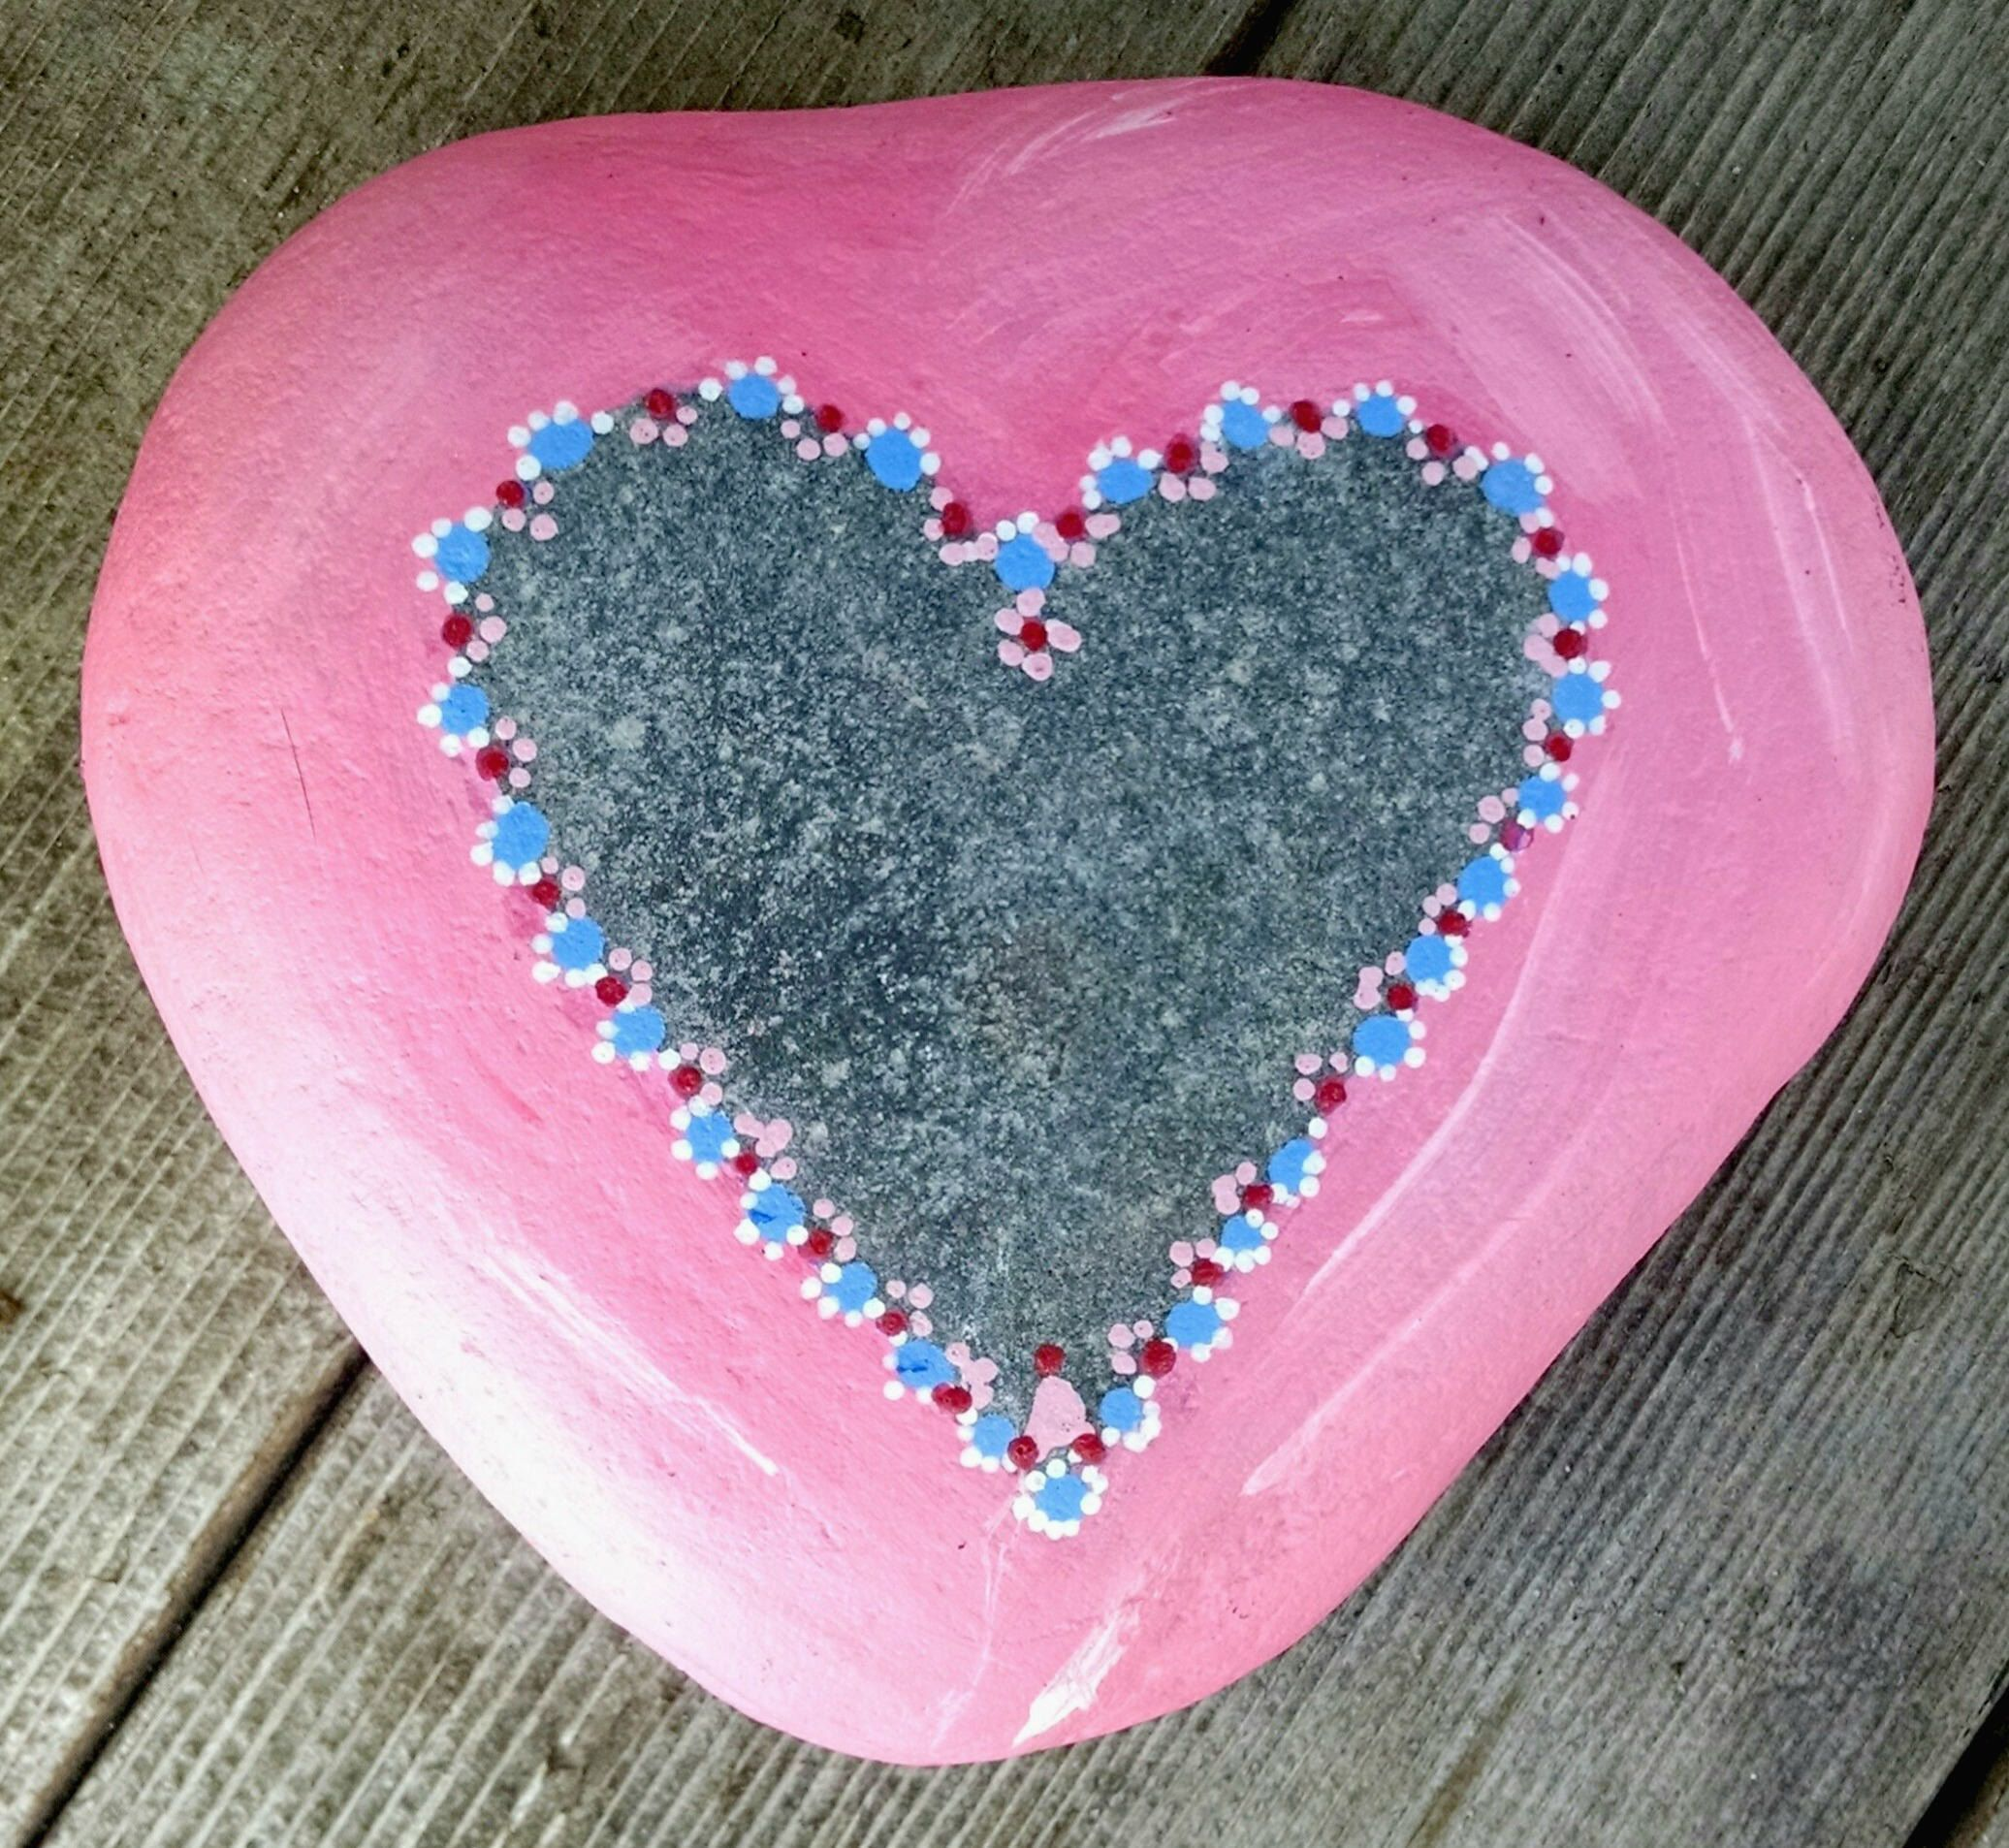 pink heart shaped hand-painted rock stone paperweight, garden